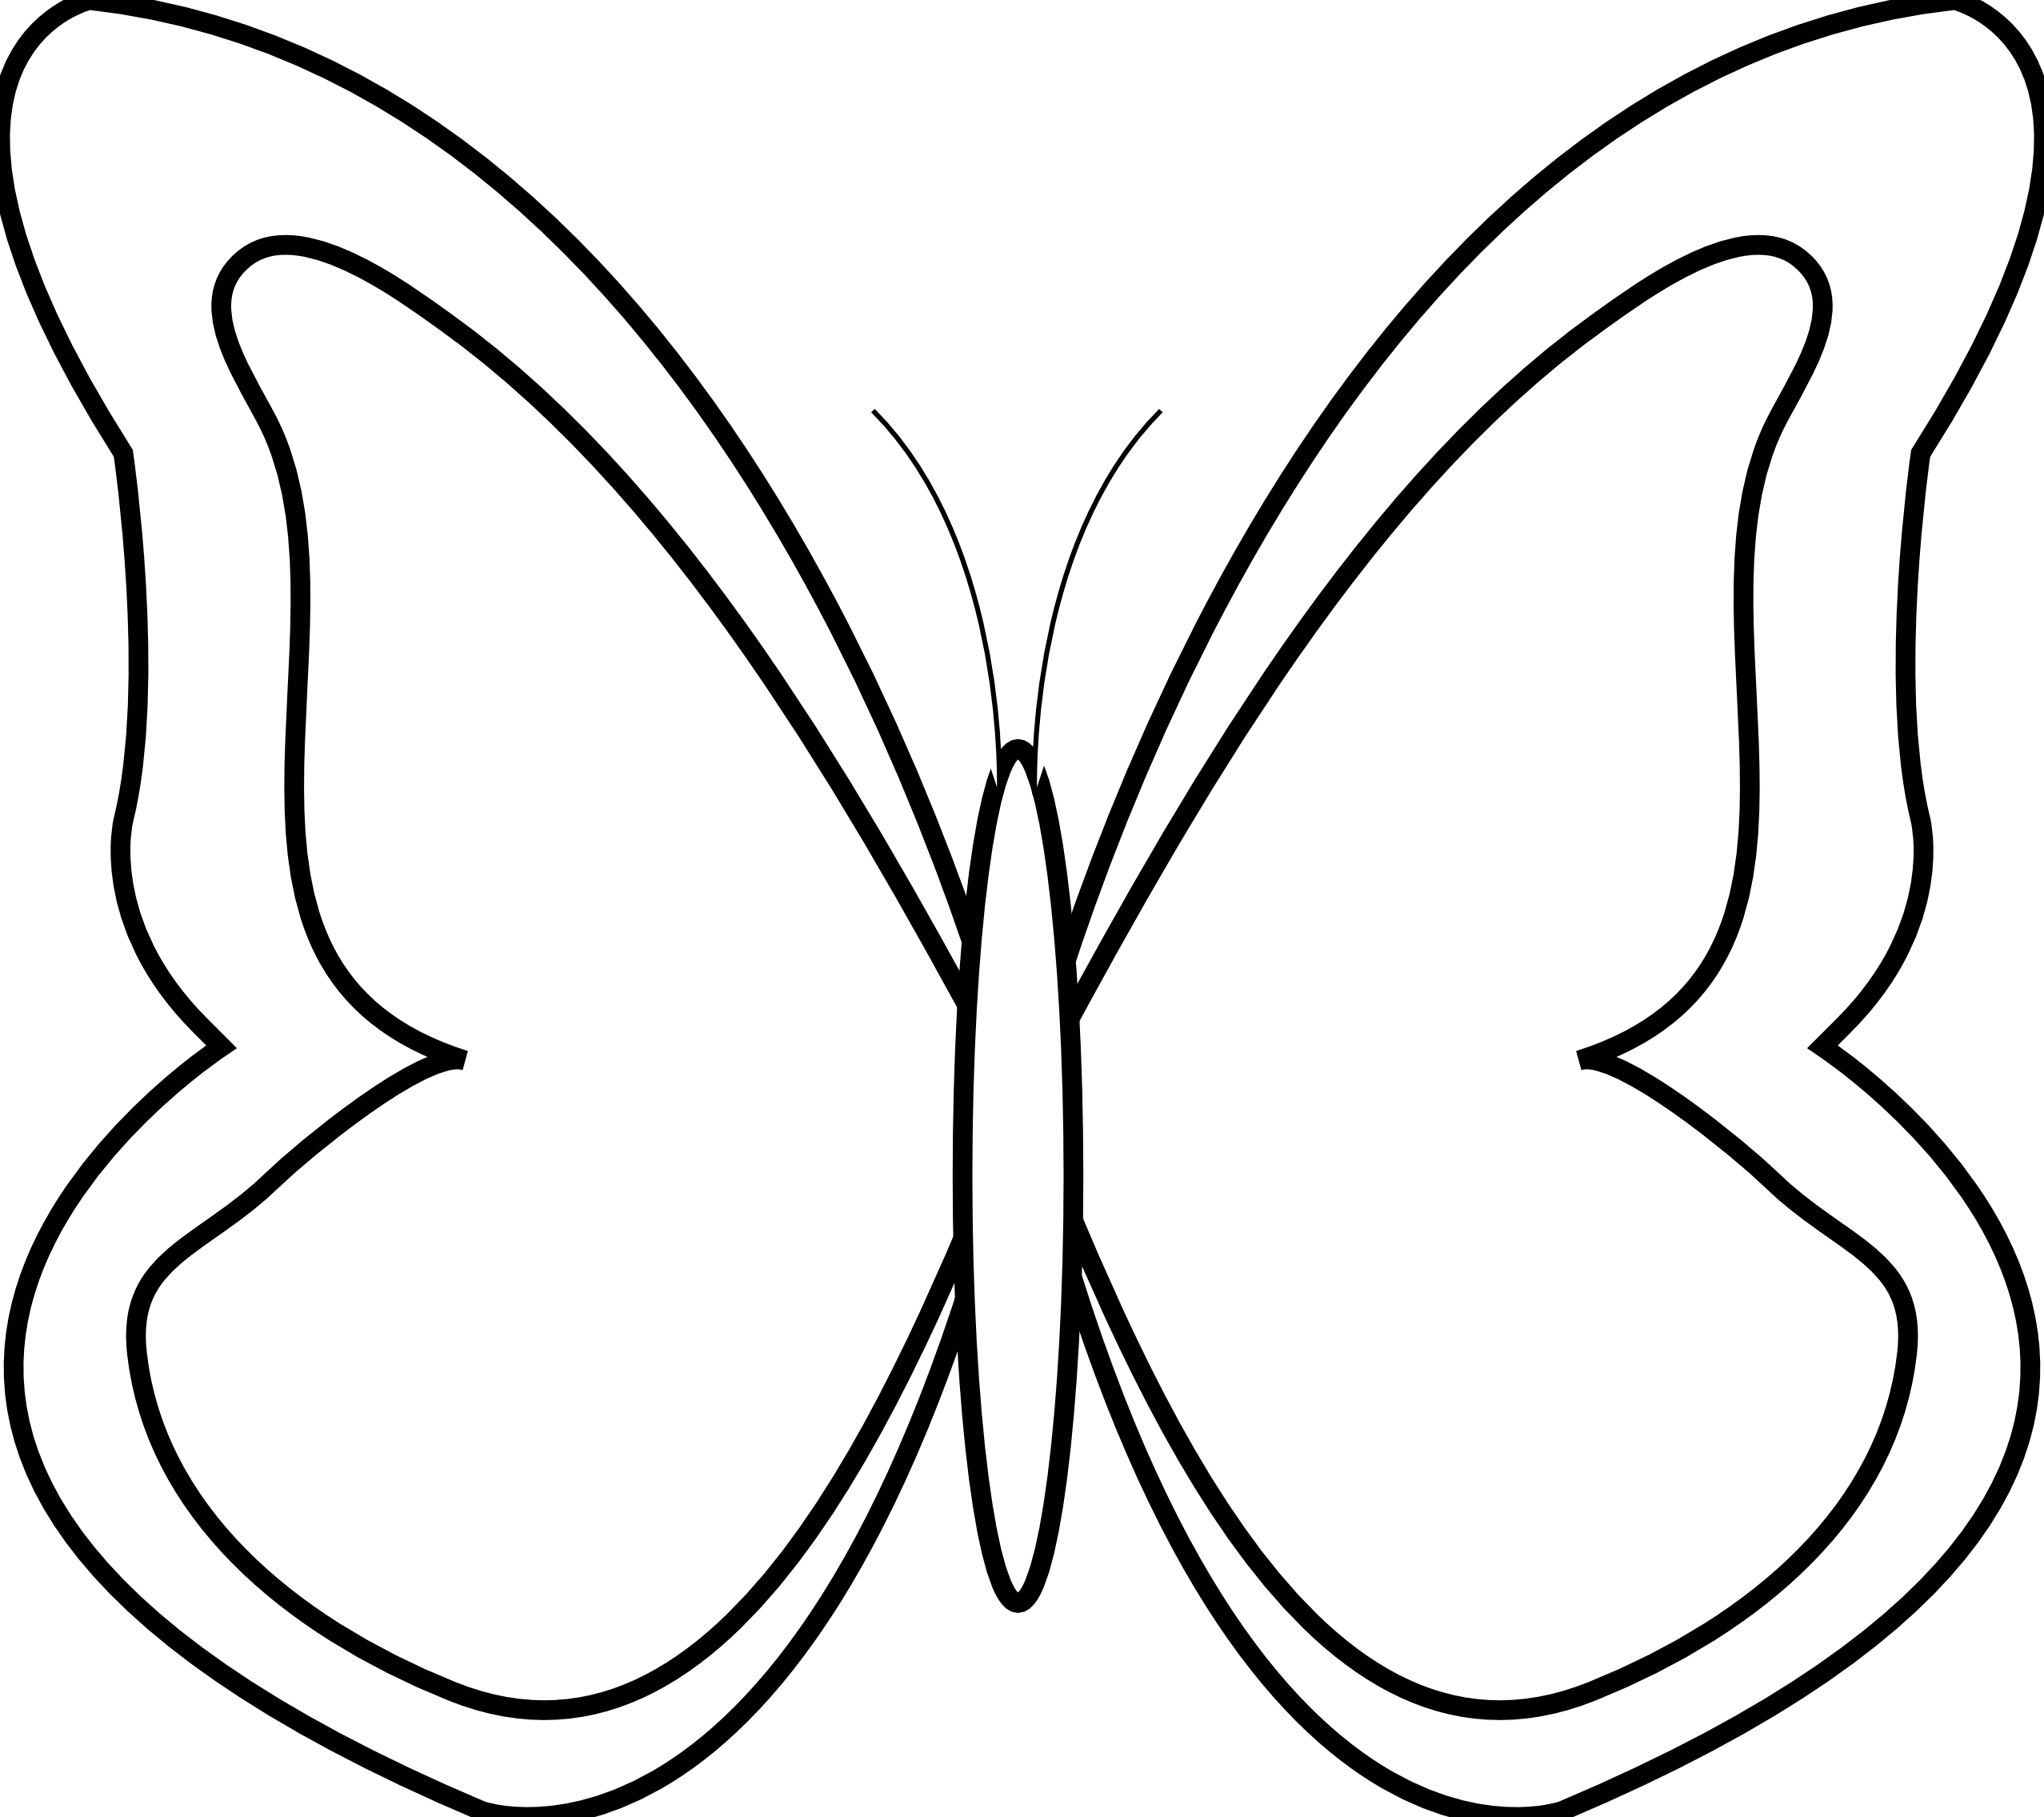 Butterfly Black And White Clip Art - Gallery Butterfly